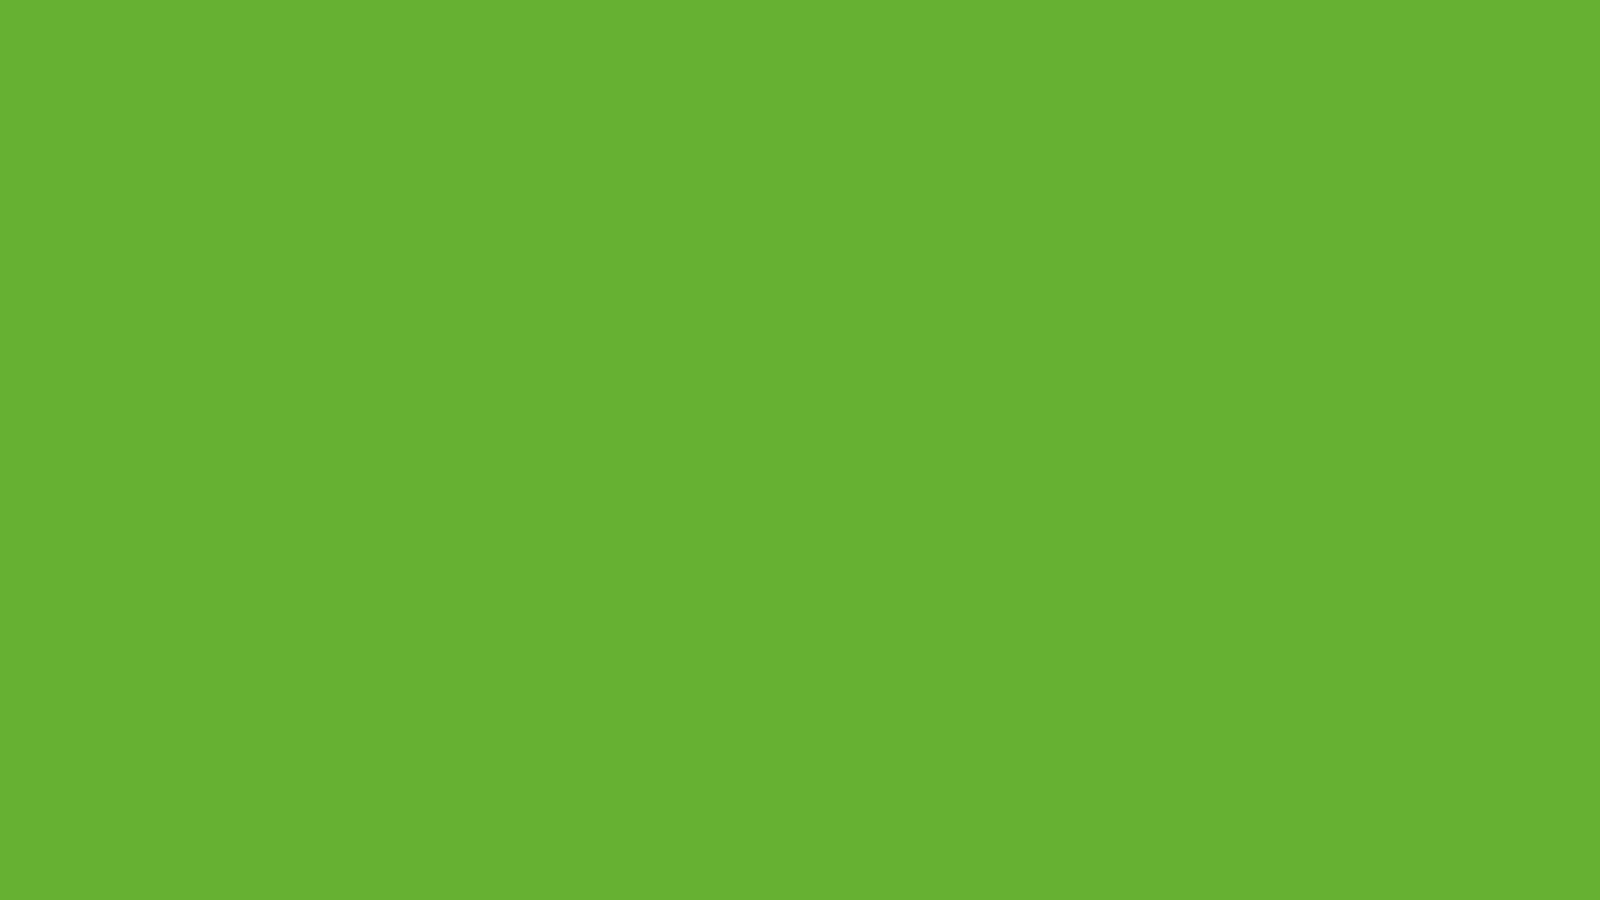 1600x900 Green RYB Solid Color Background